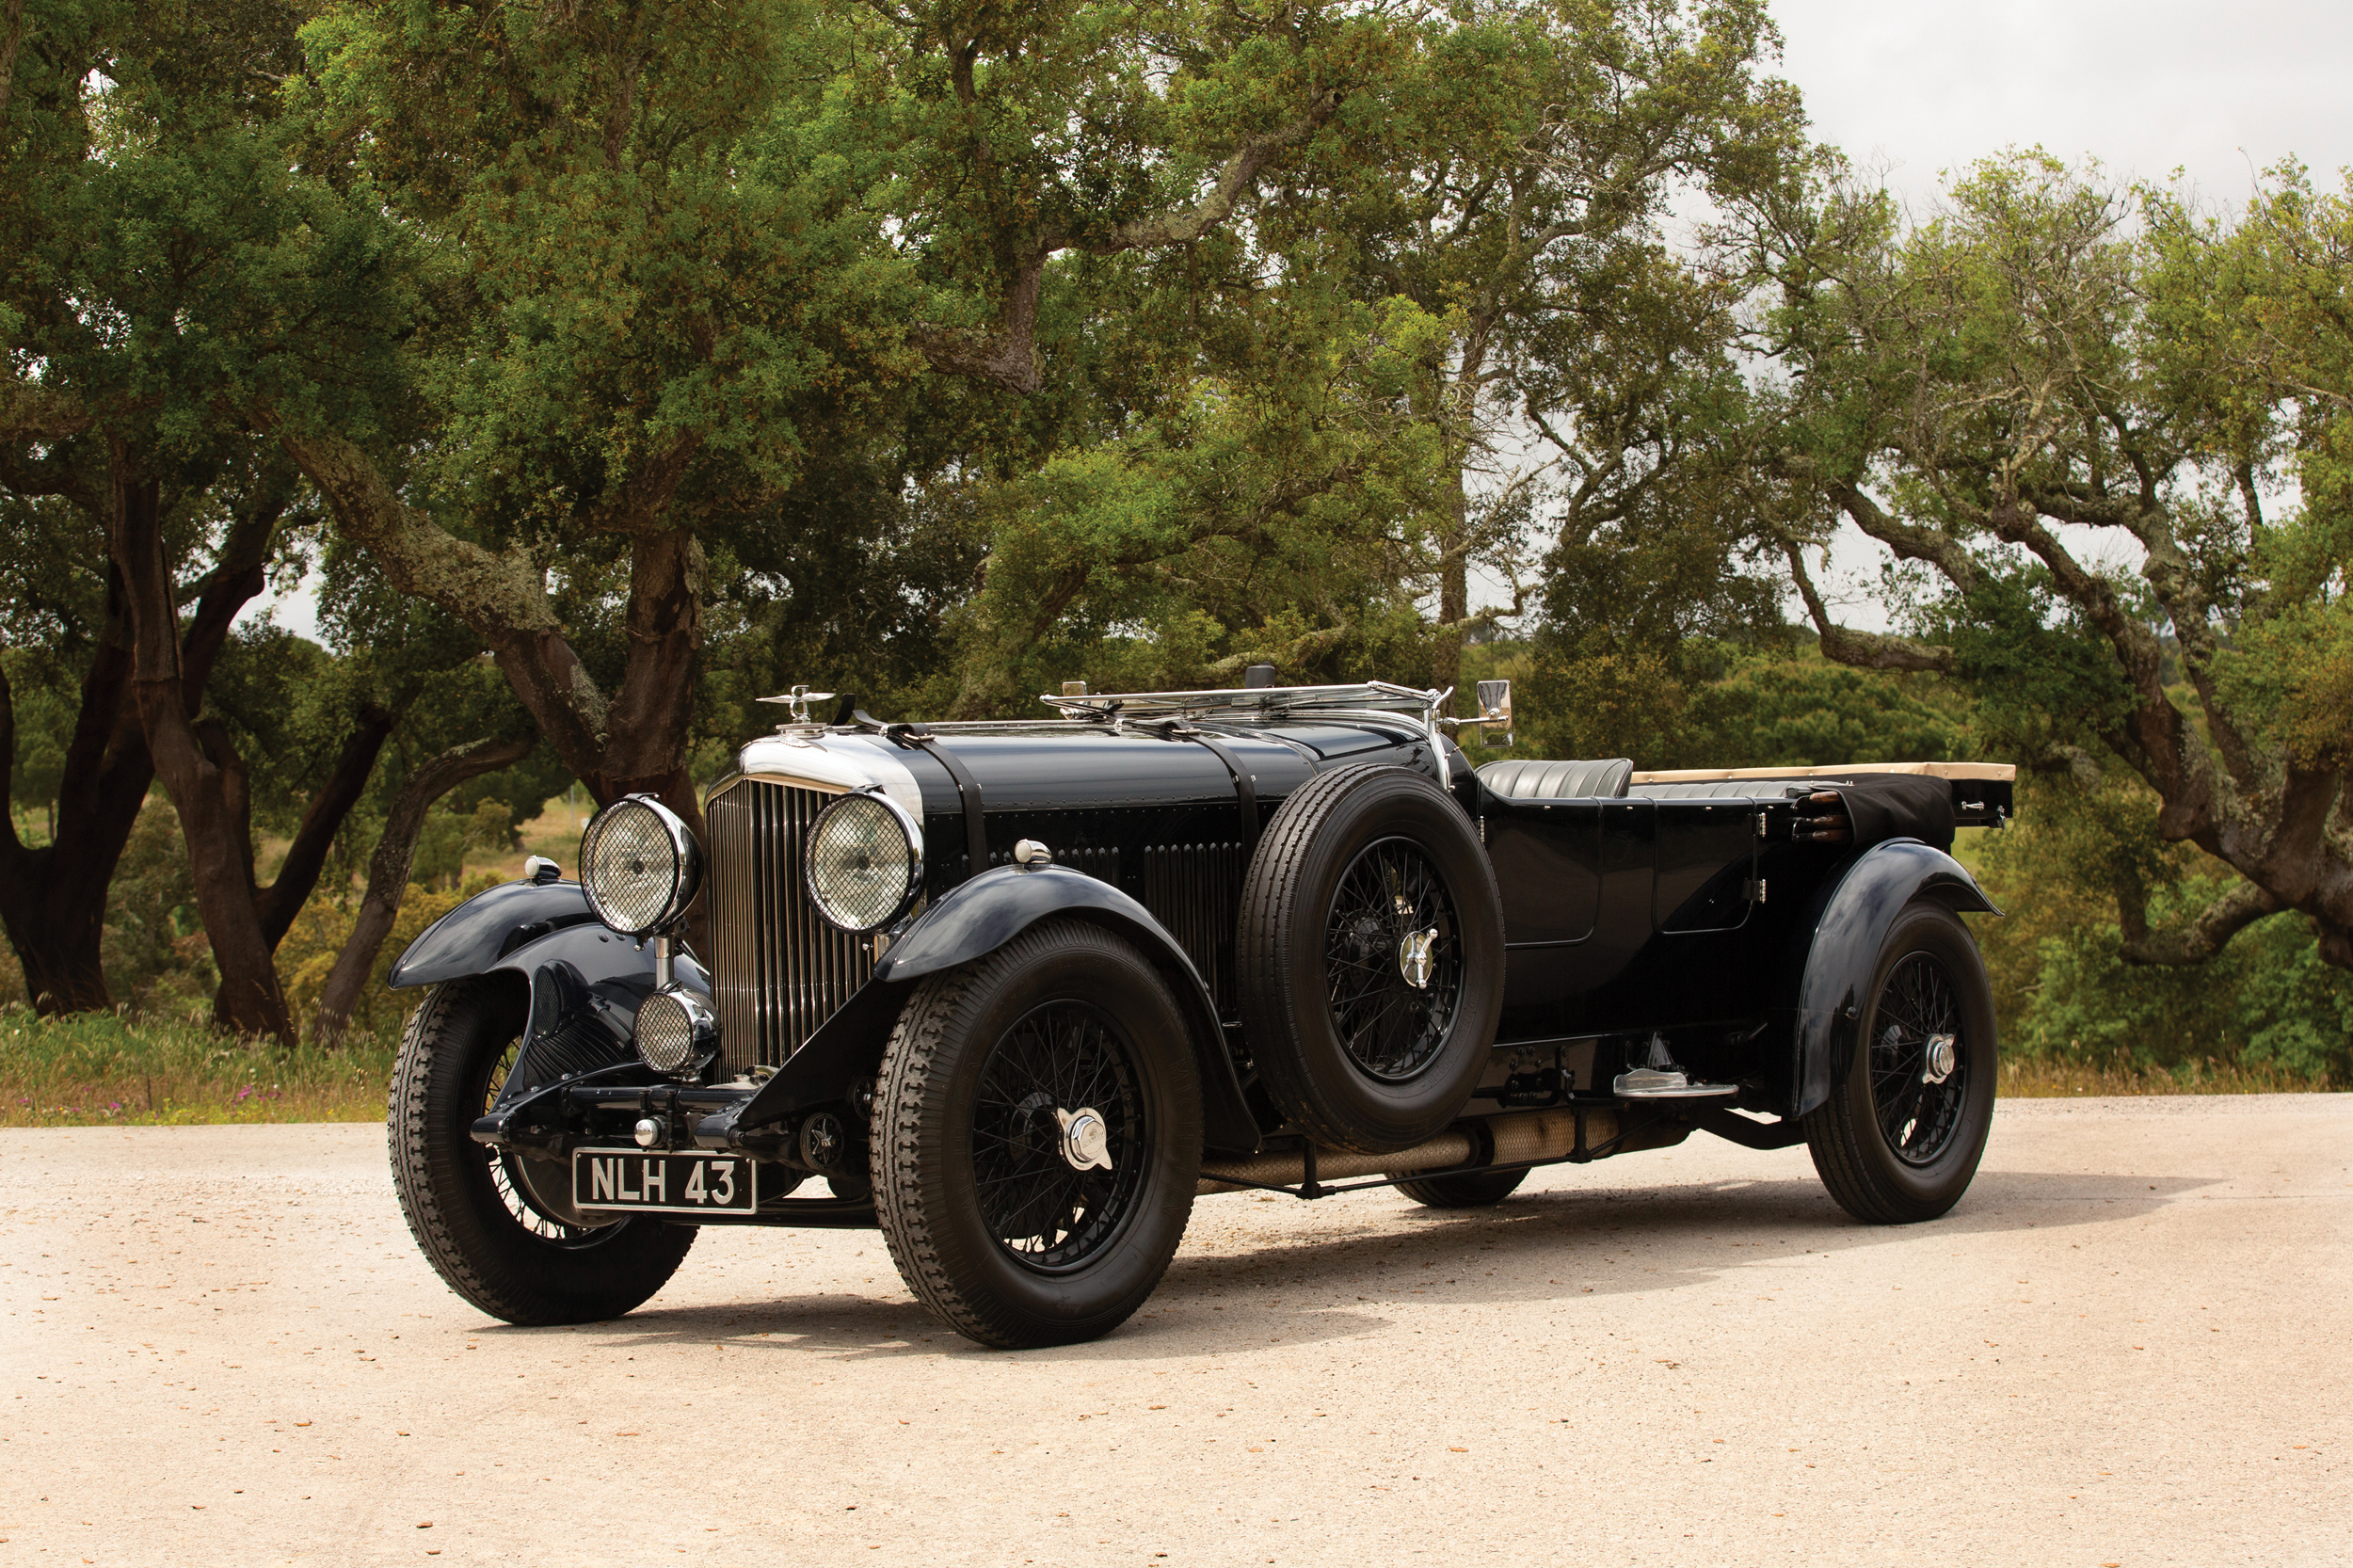 Sarragga Collection - 1931 Bentley 8-Litre Tourer (Tom Gidden © 2019 Courtesy of RM Sotheby's) [2]